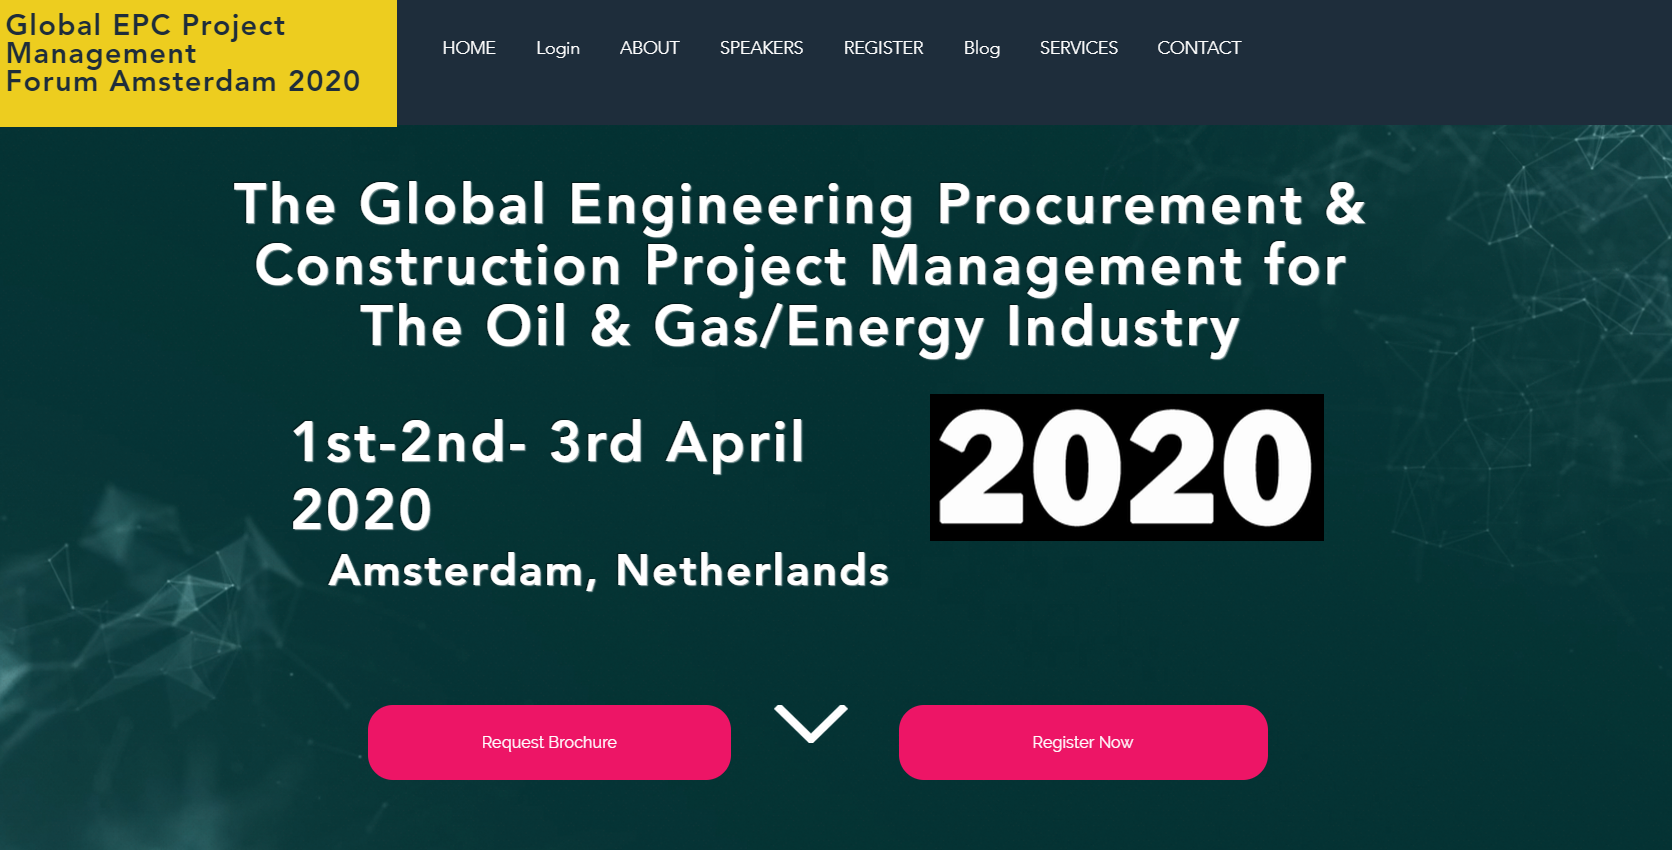 Energy | Netherlands | Global EPC Project Management Forum 2020